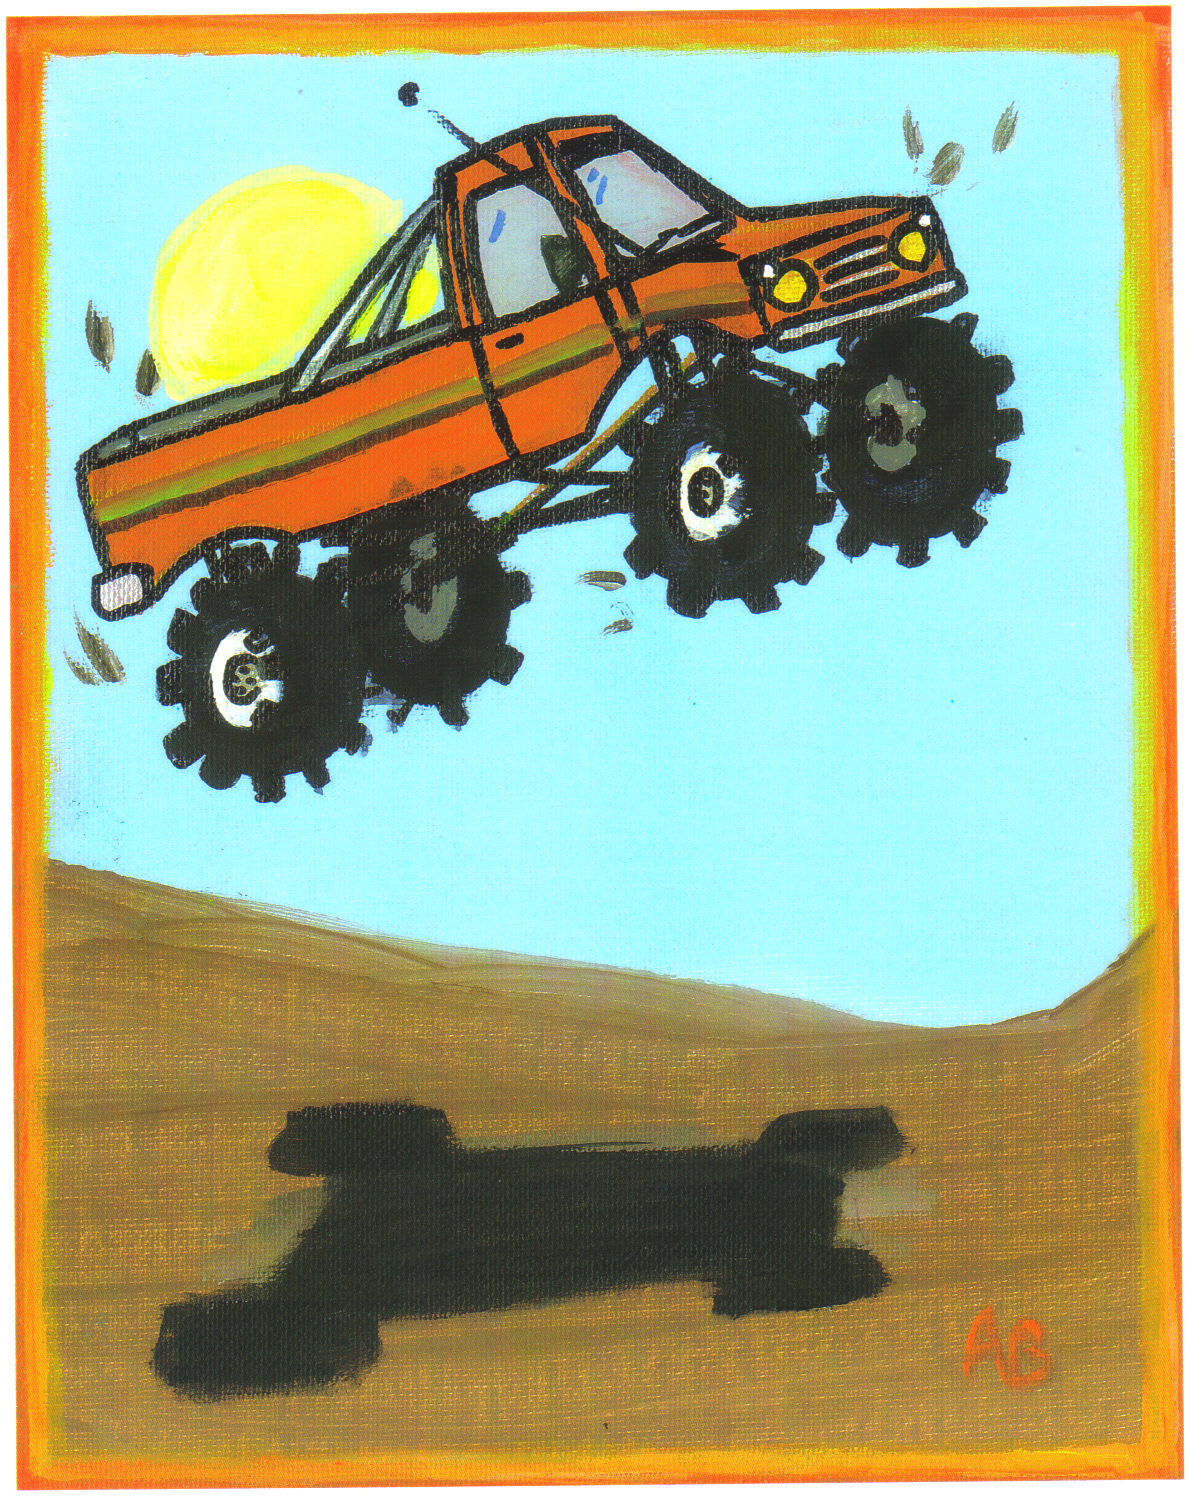 Orange_monster_truck_original